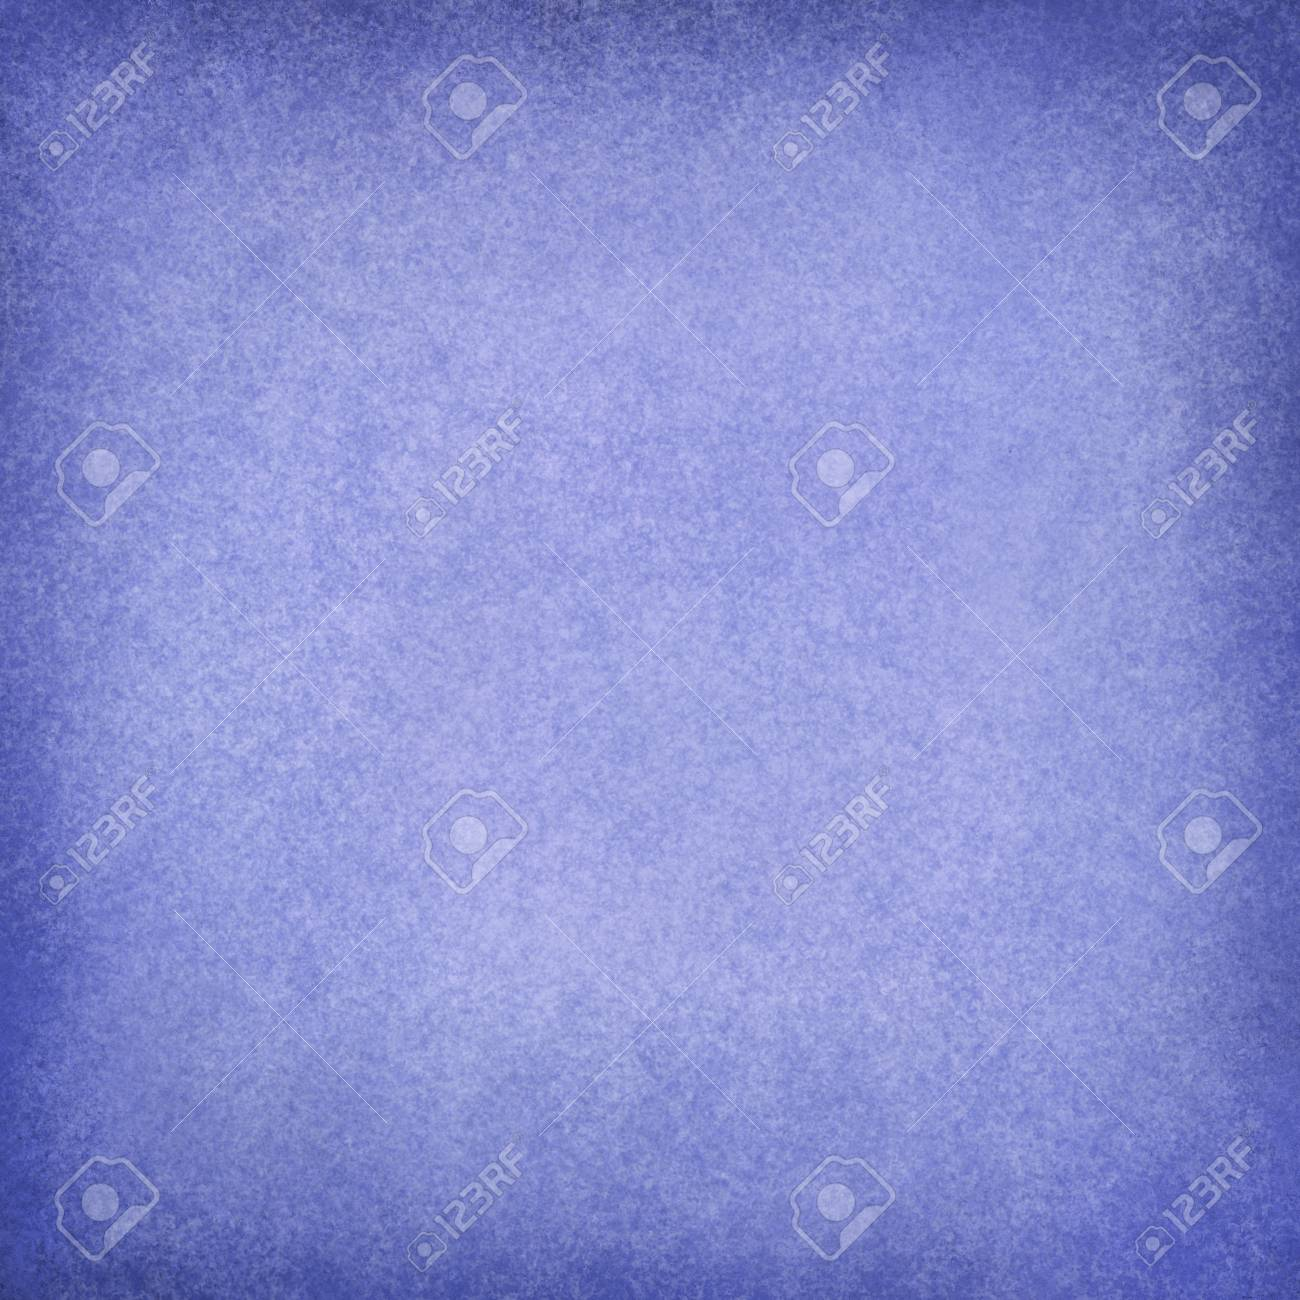 abstract blue background Stock Photo - 24831353